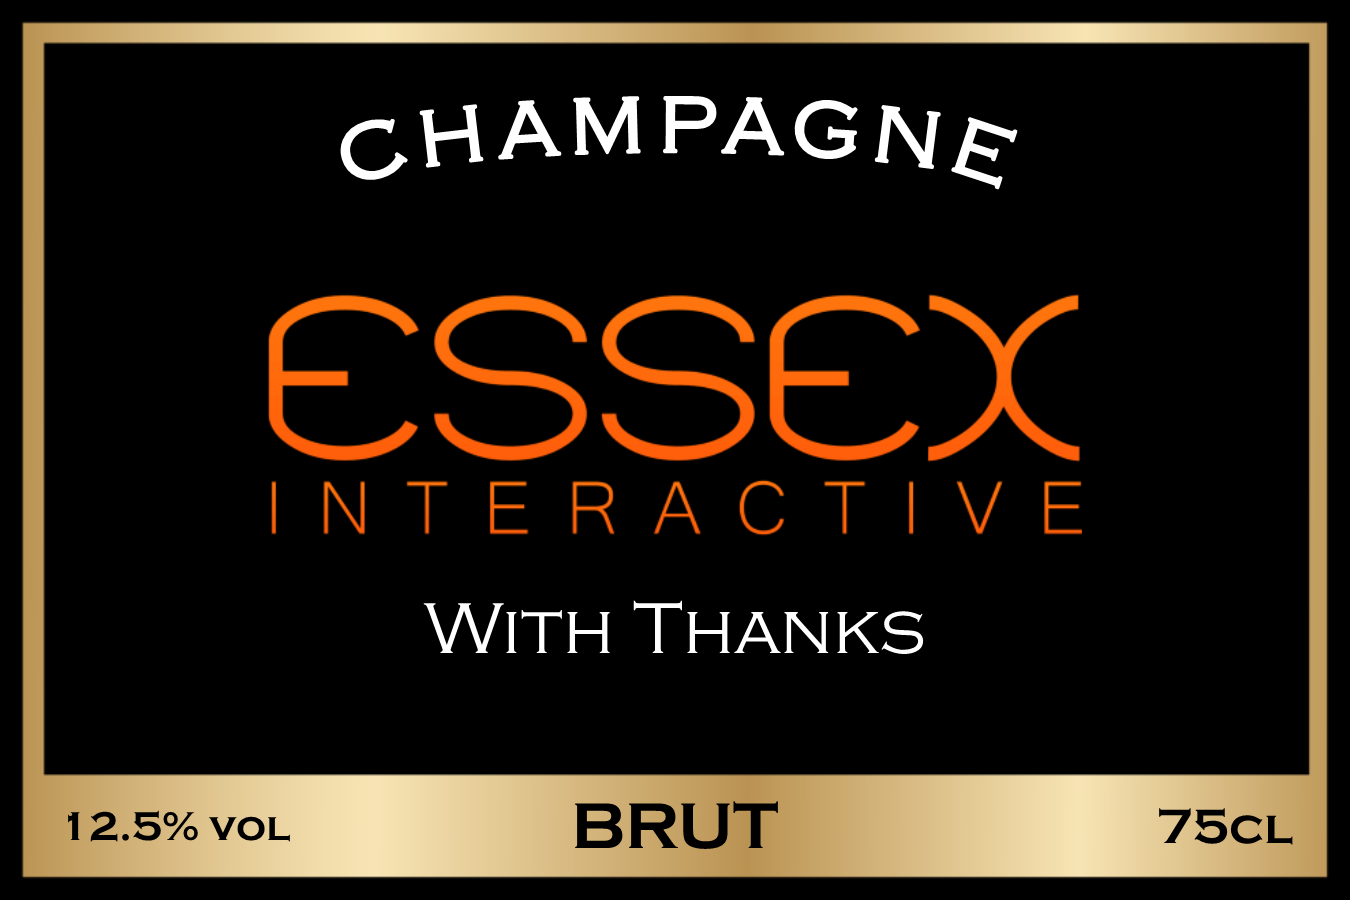 Essex Interactive Final Champagne